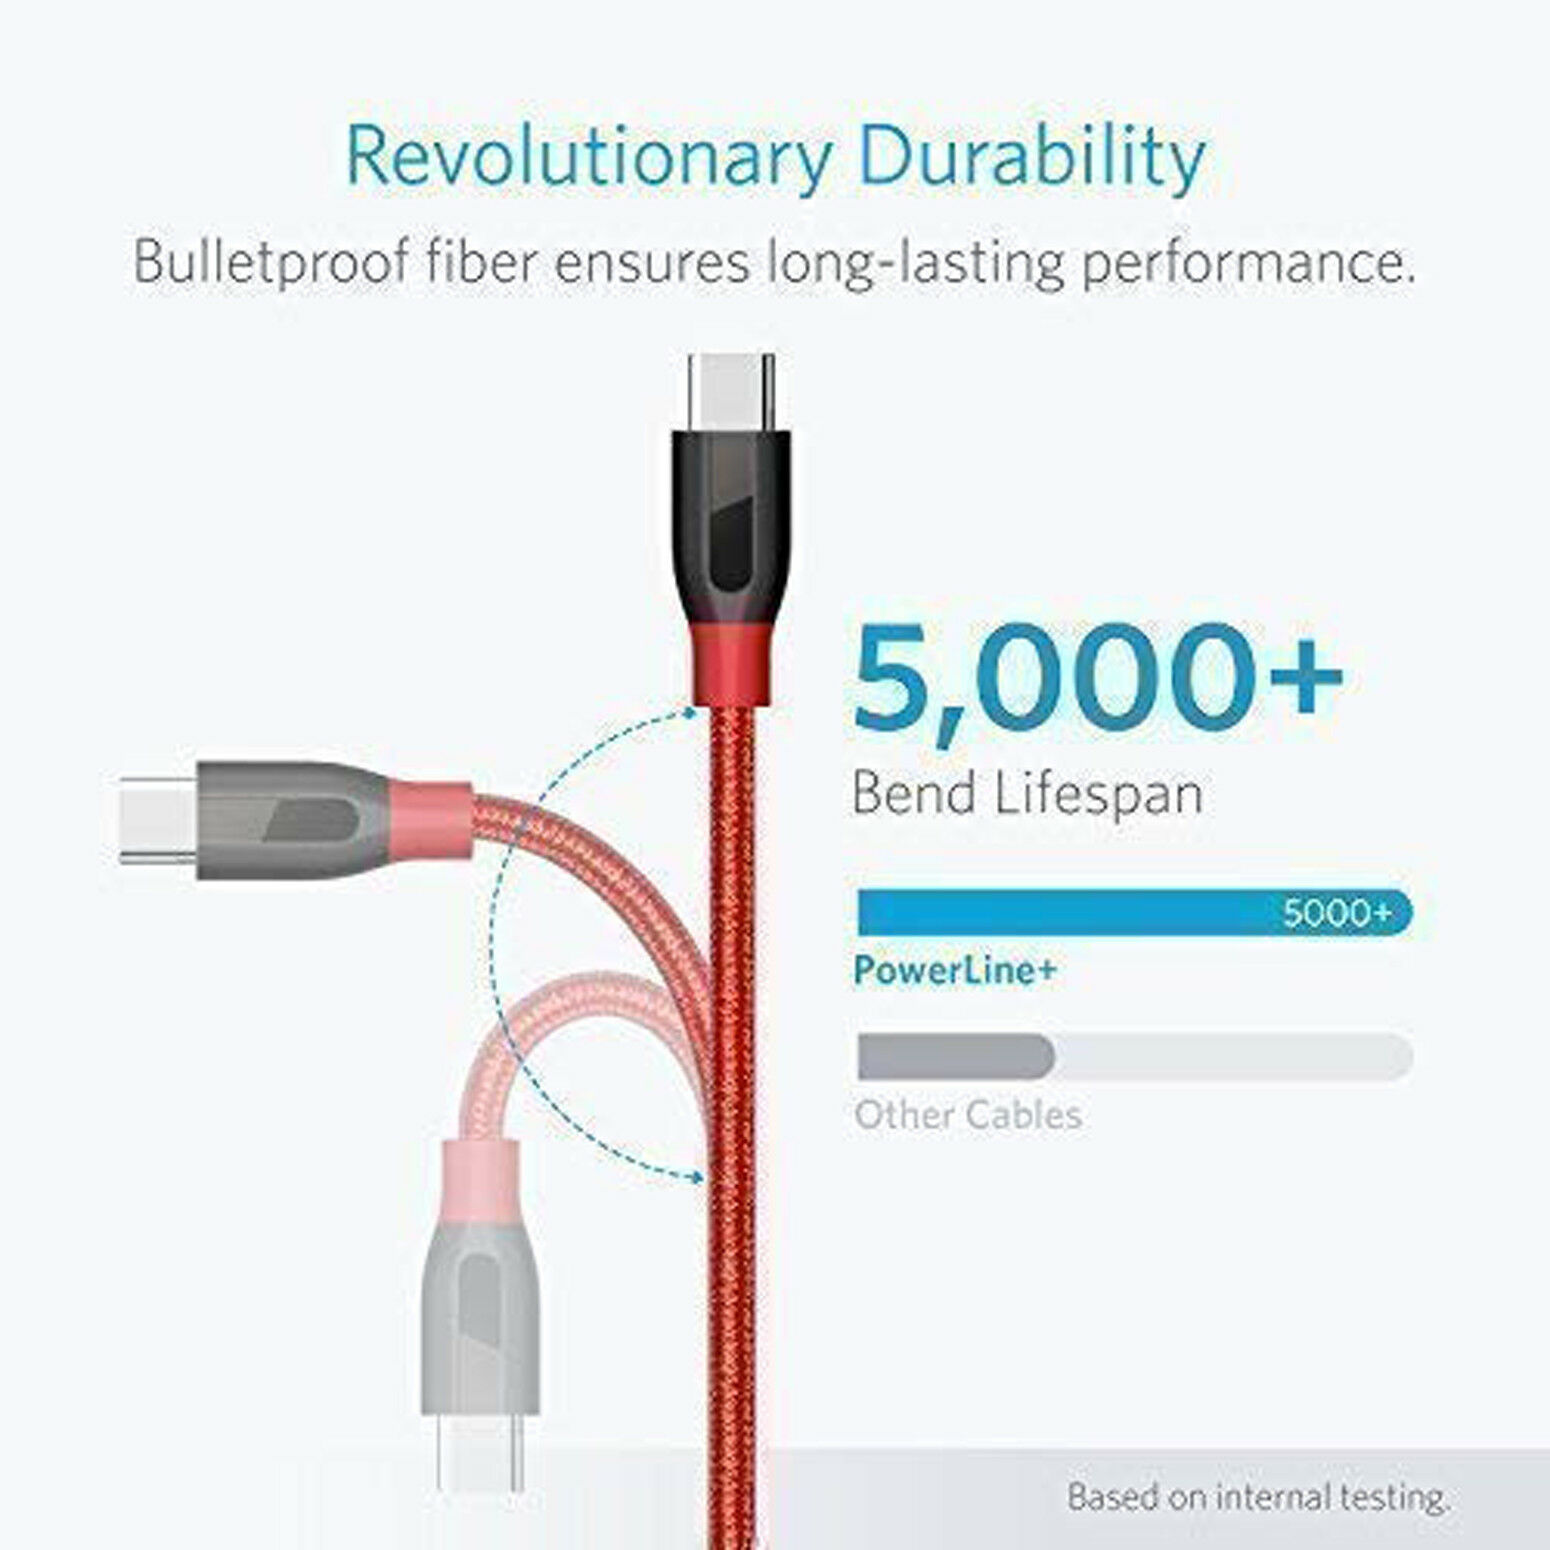 USB Type C Cable, Anker PowerLine+ USB-C to USB 3.0 cable (3ft), High Durability